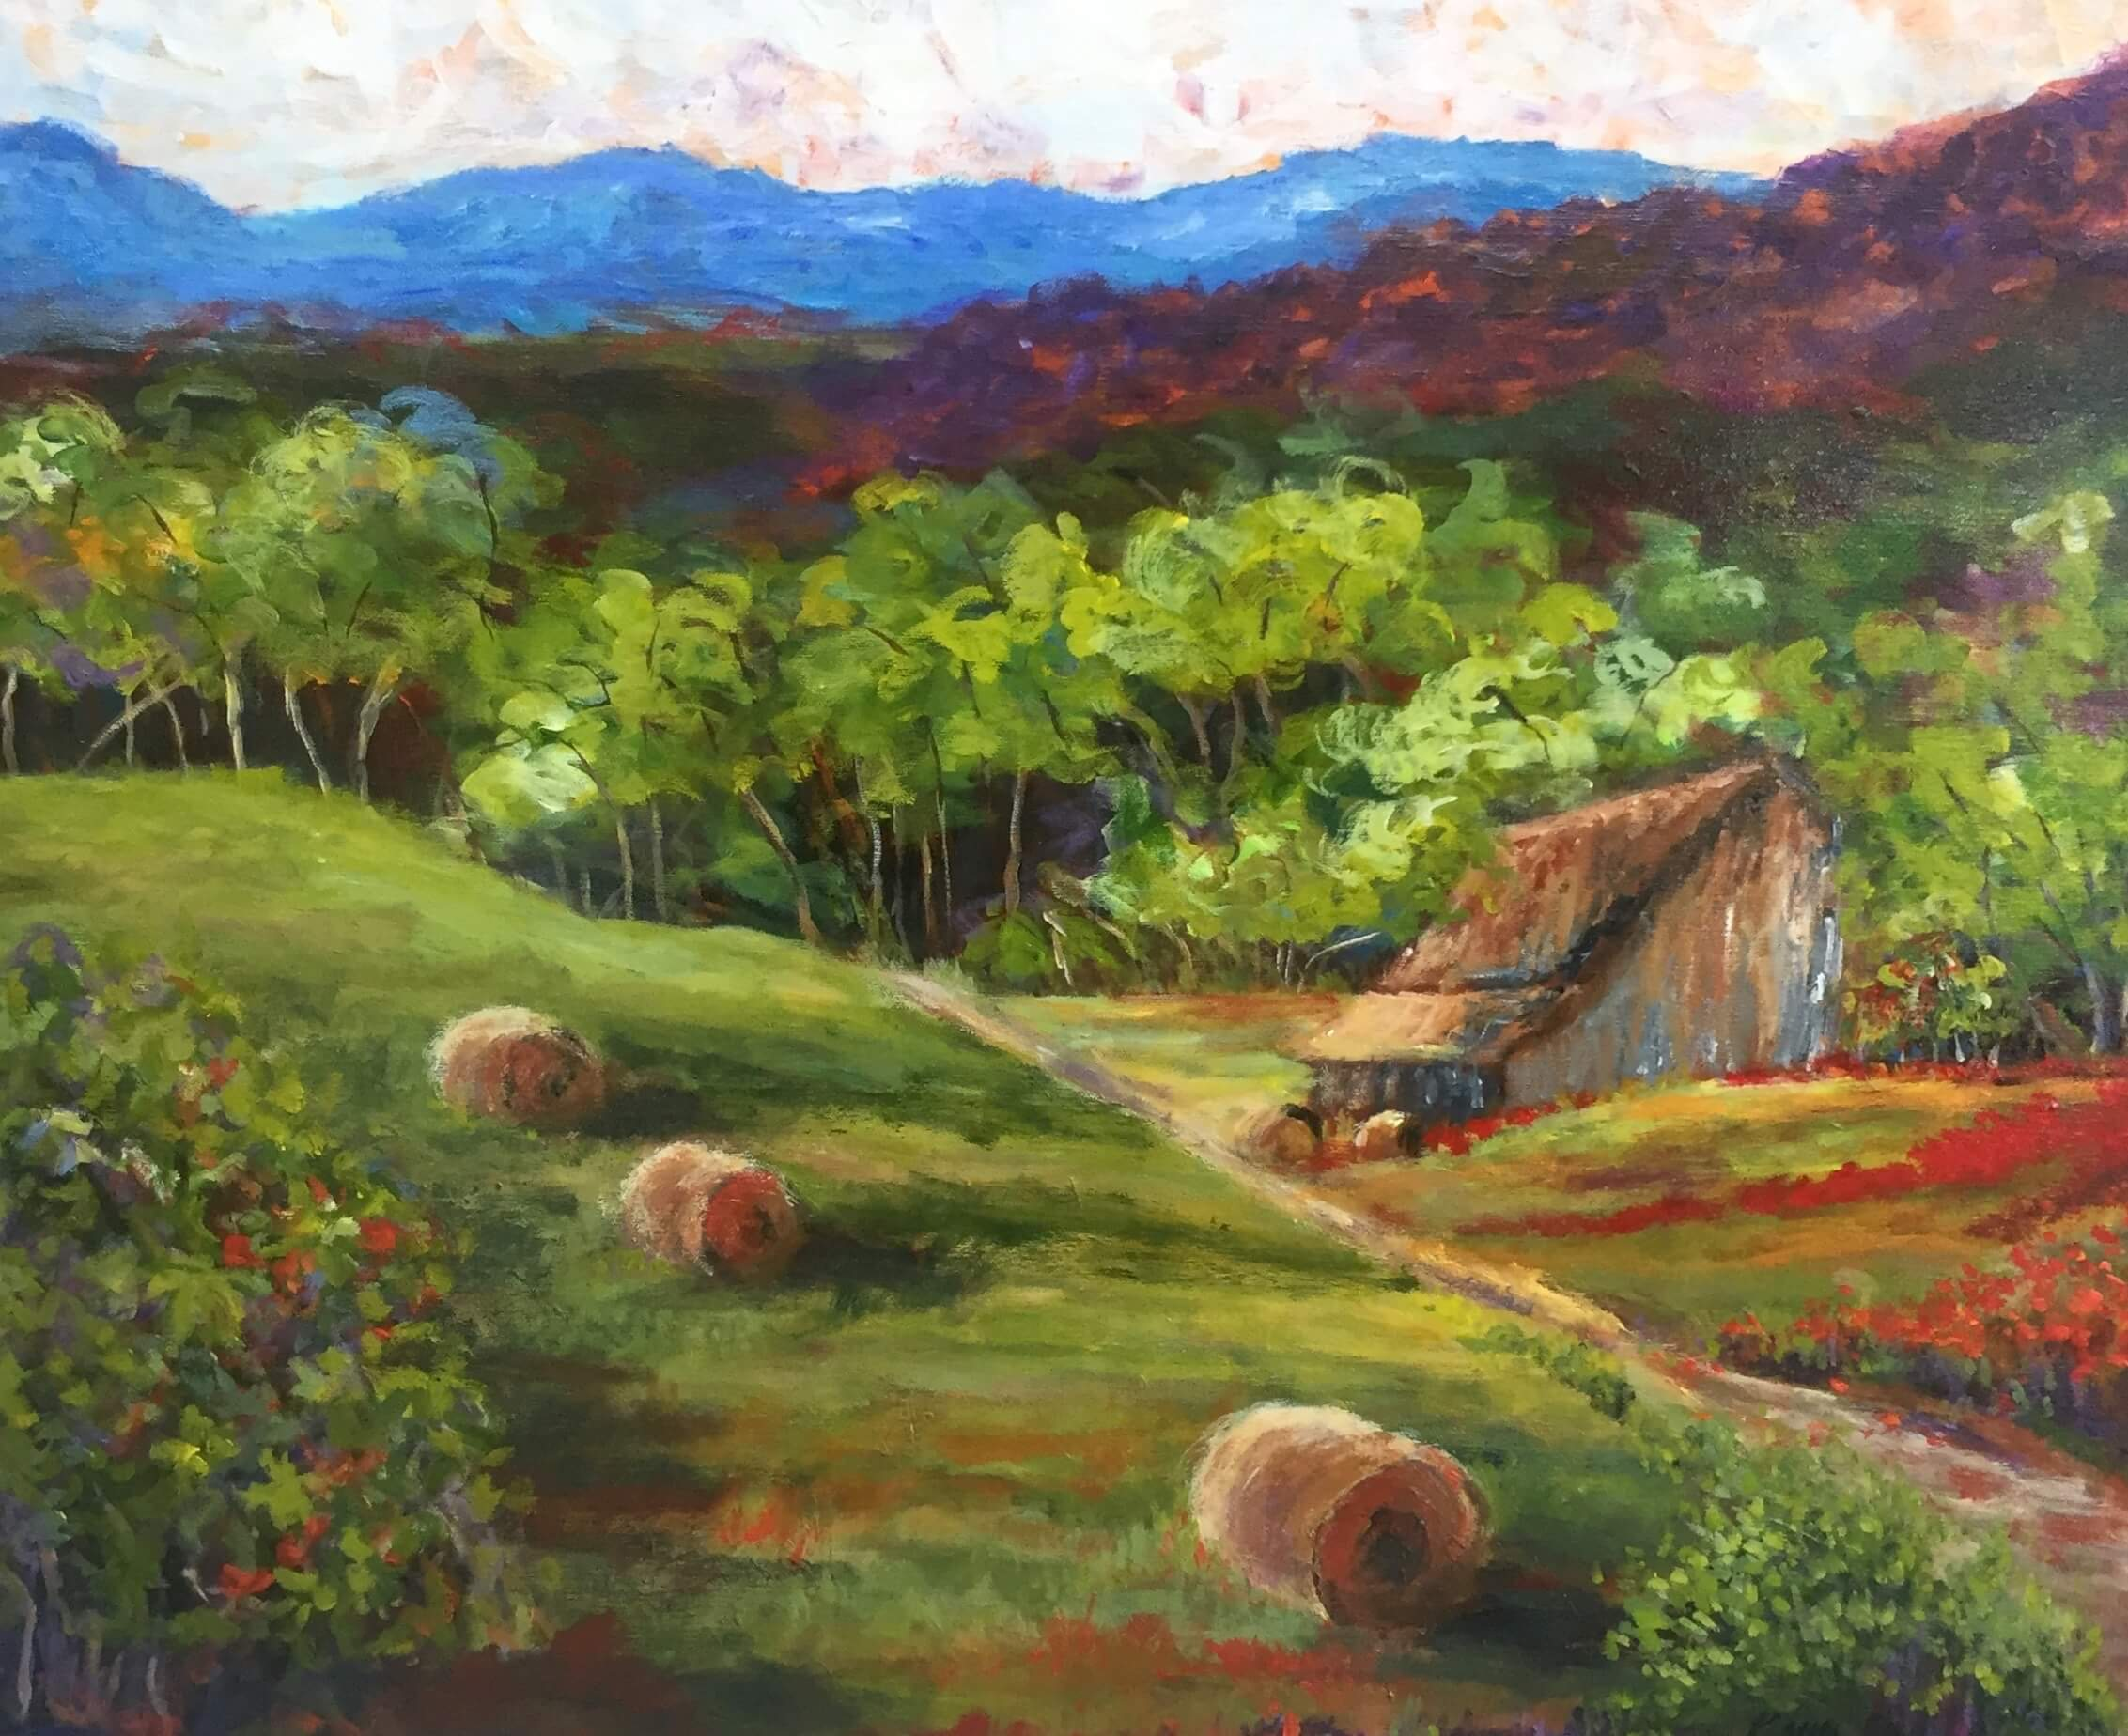 "A Mountain Barn 24"" x 30"" Acrylic on Canvas Original Painting by Kathy Miller"